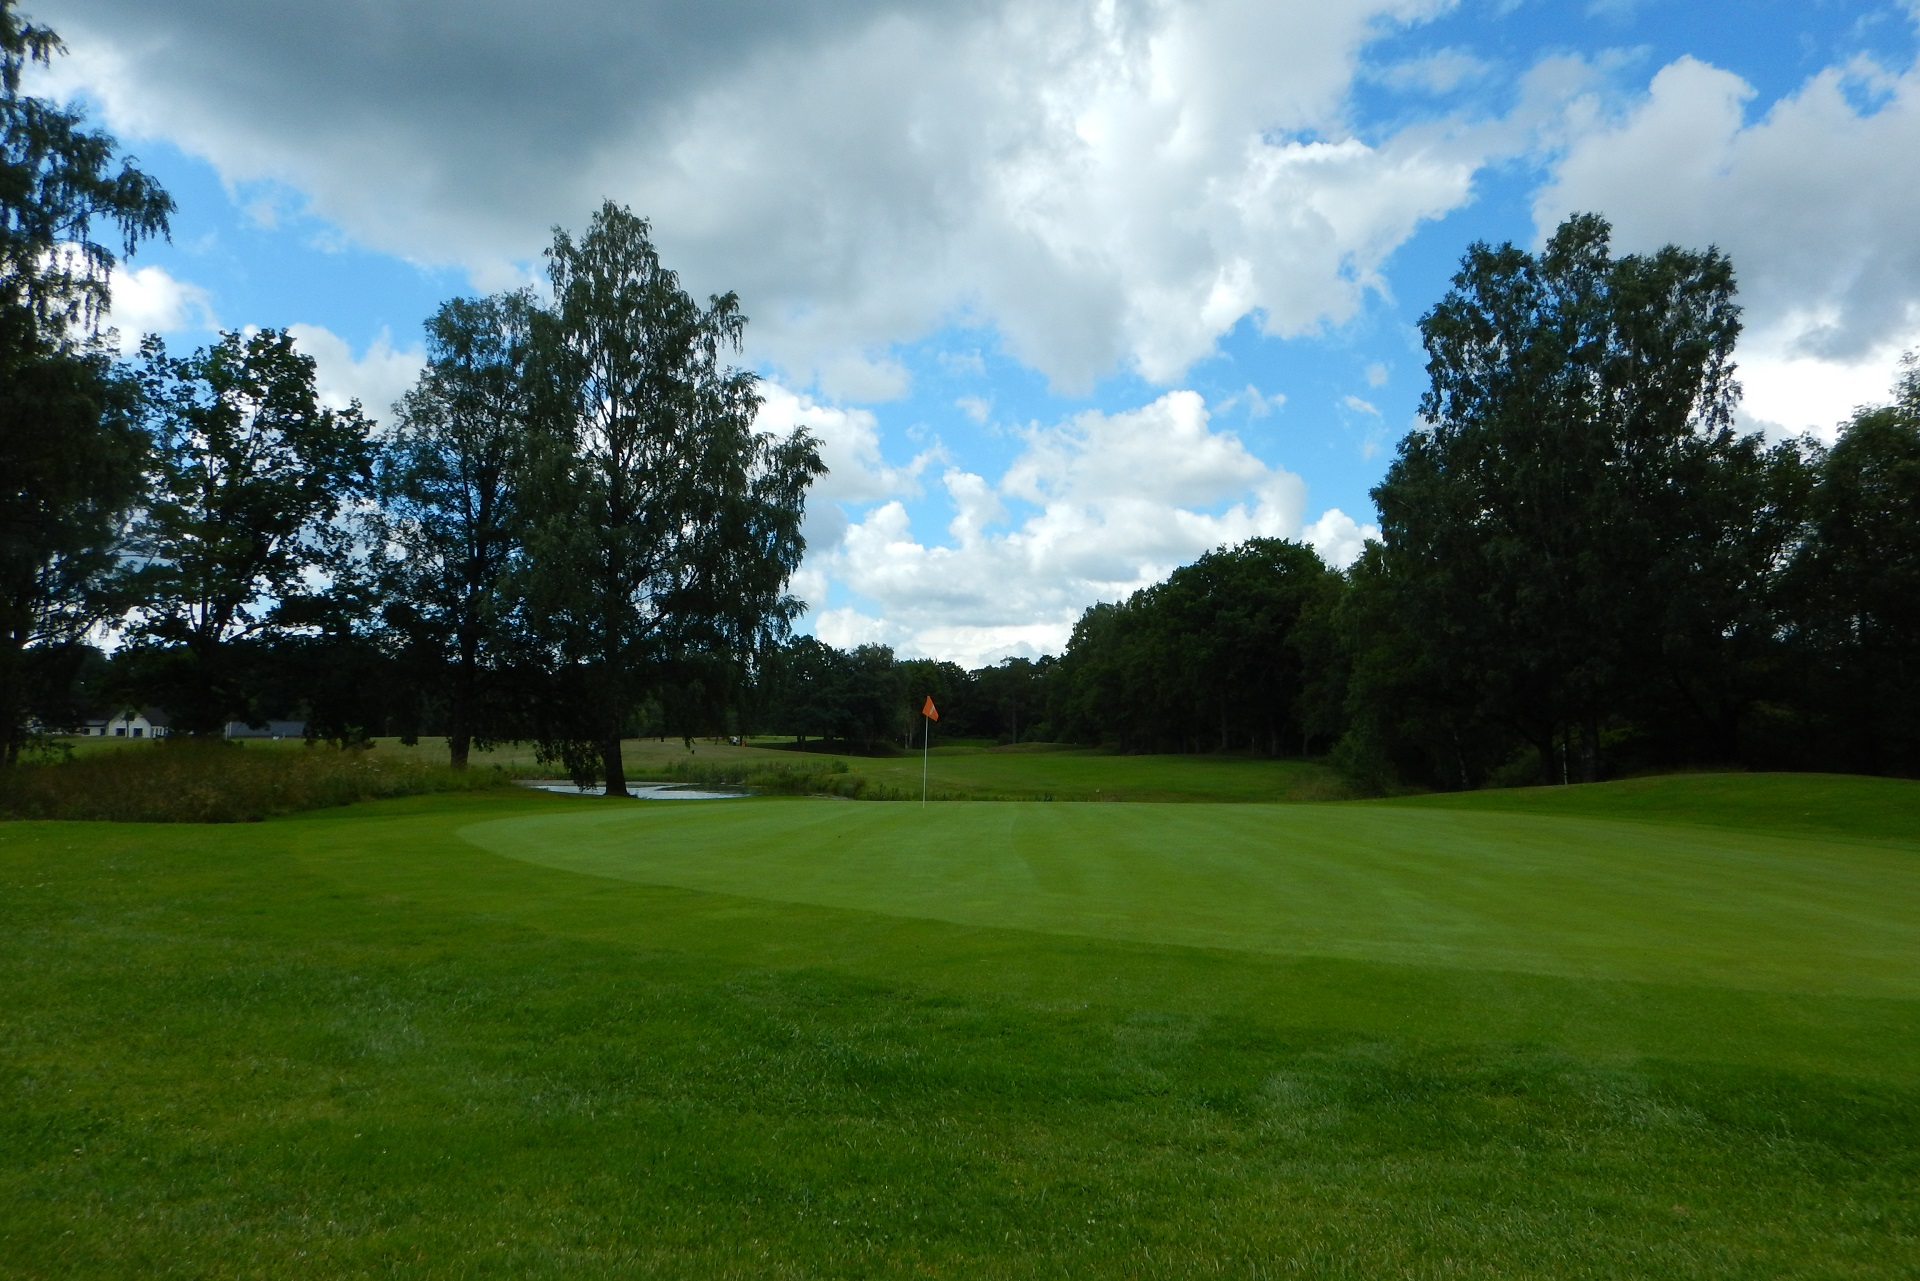 Perstorps Golfklubb